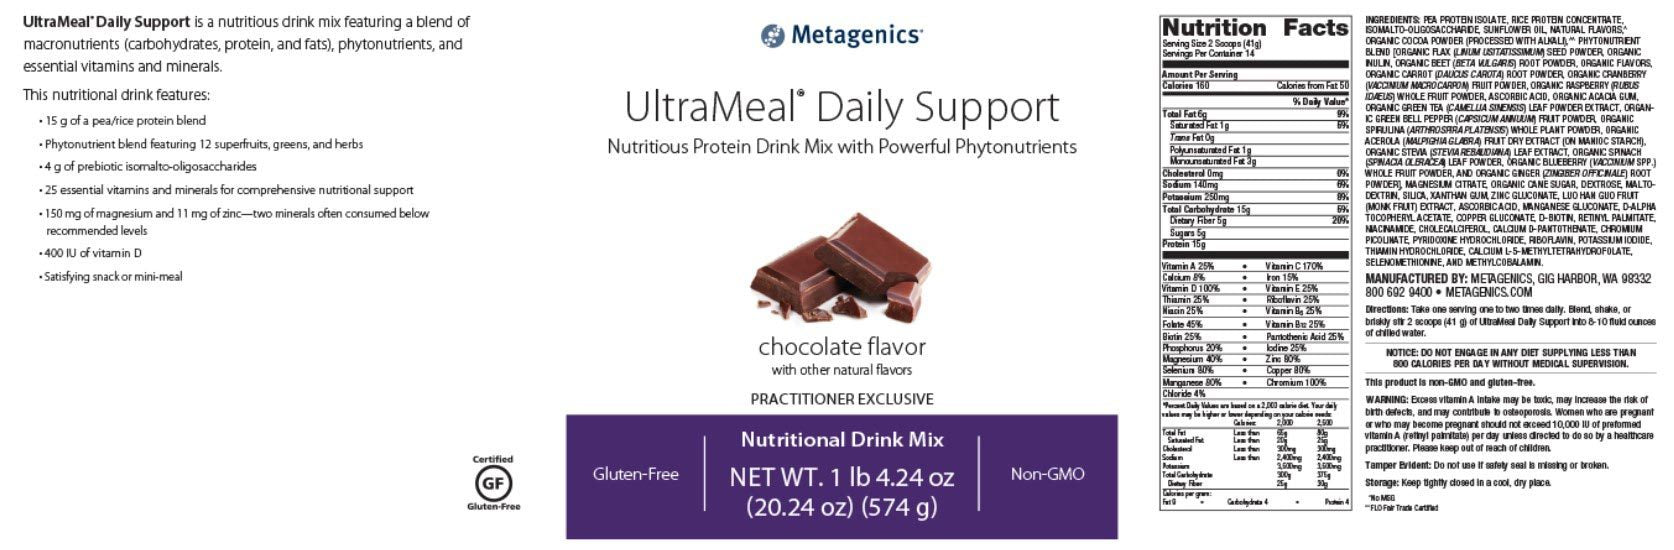 Metagenics UltraMeal Daily Support